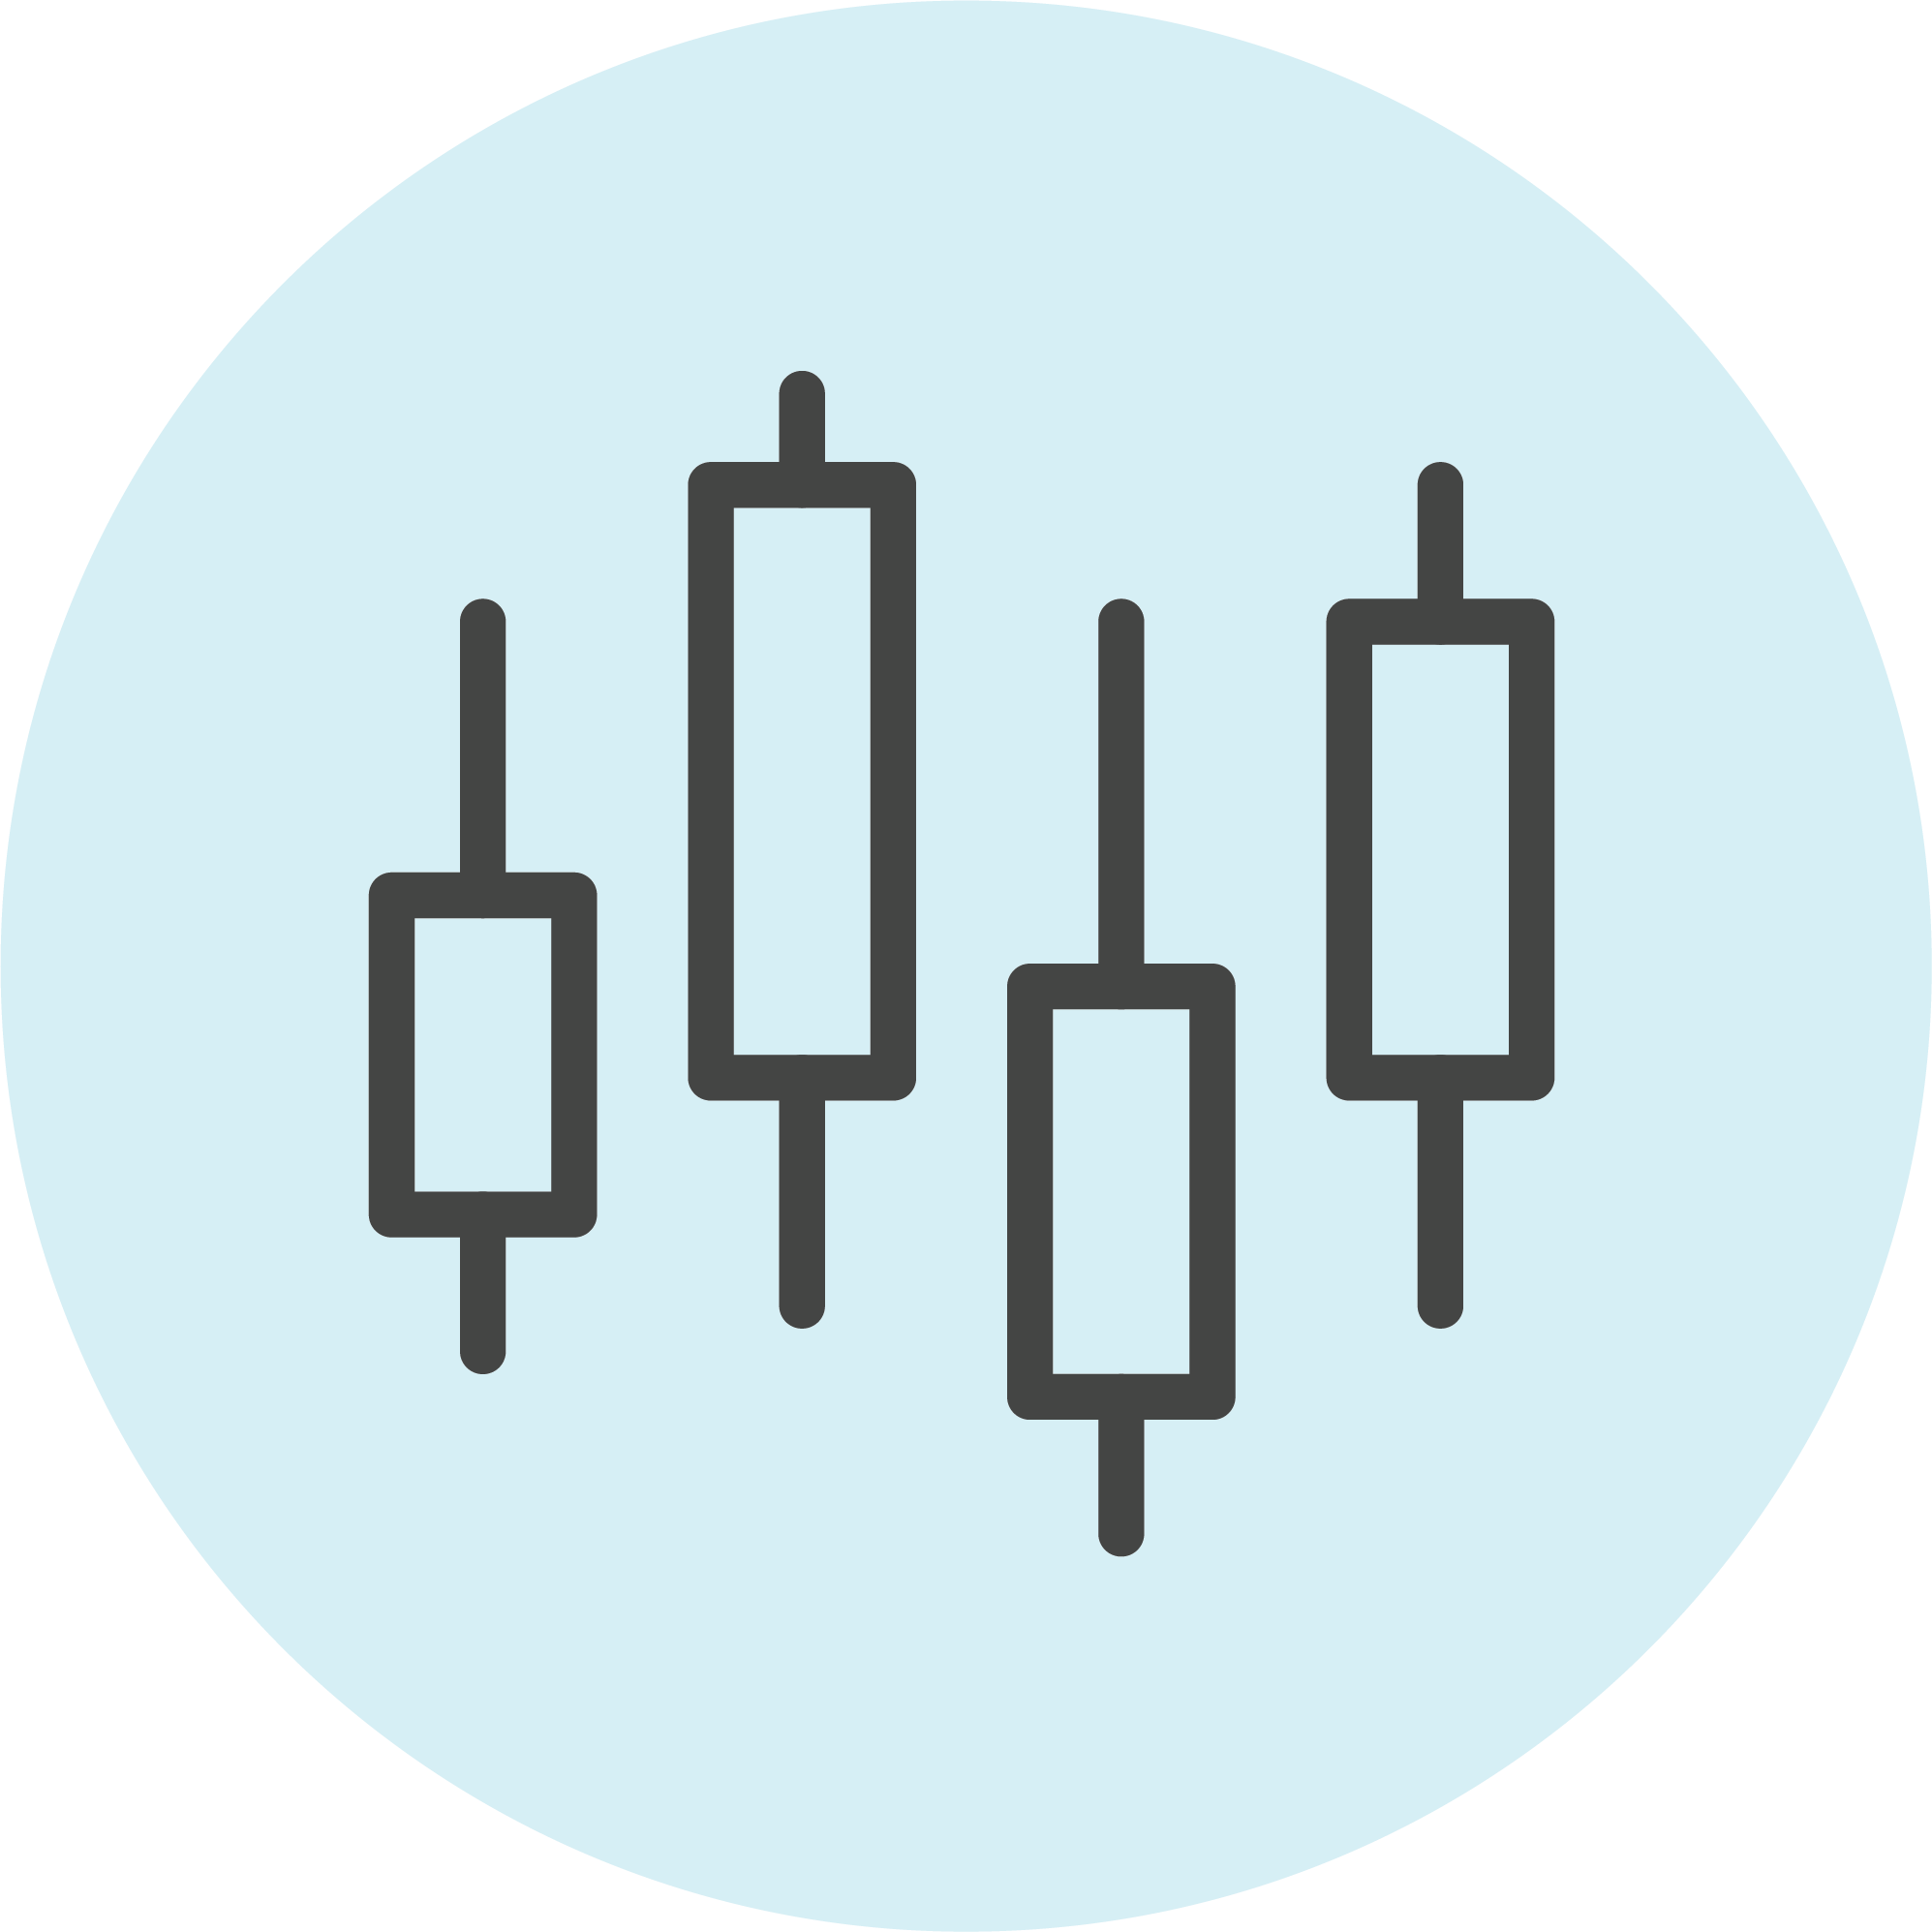 Scalable Maintenance icon